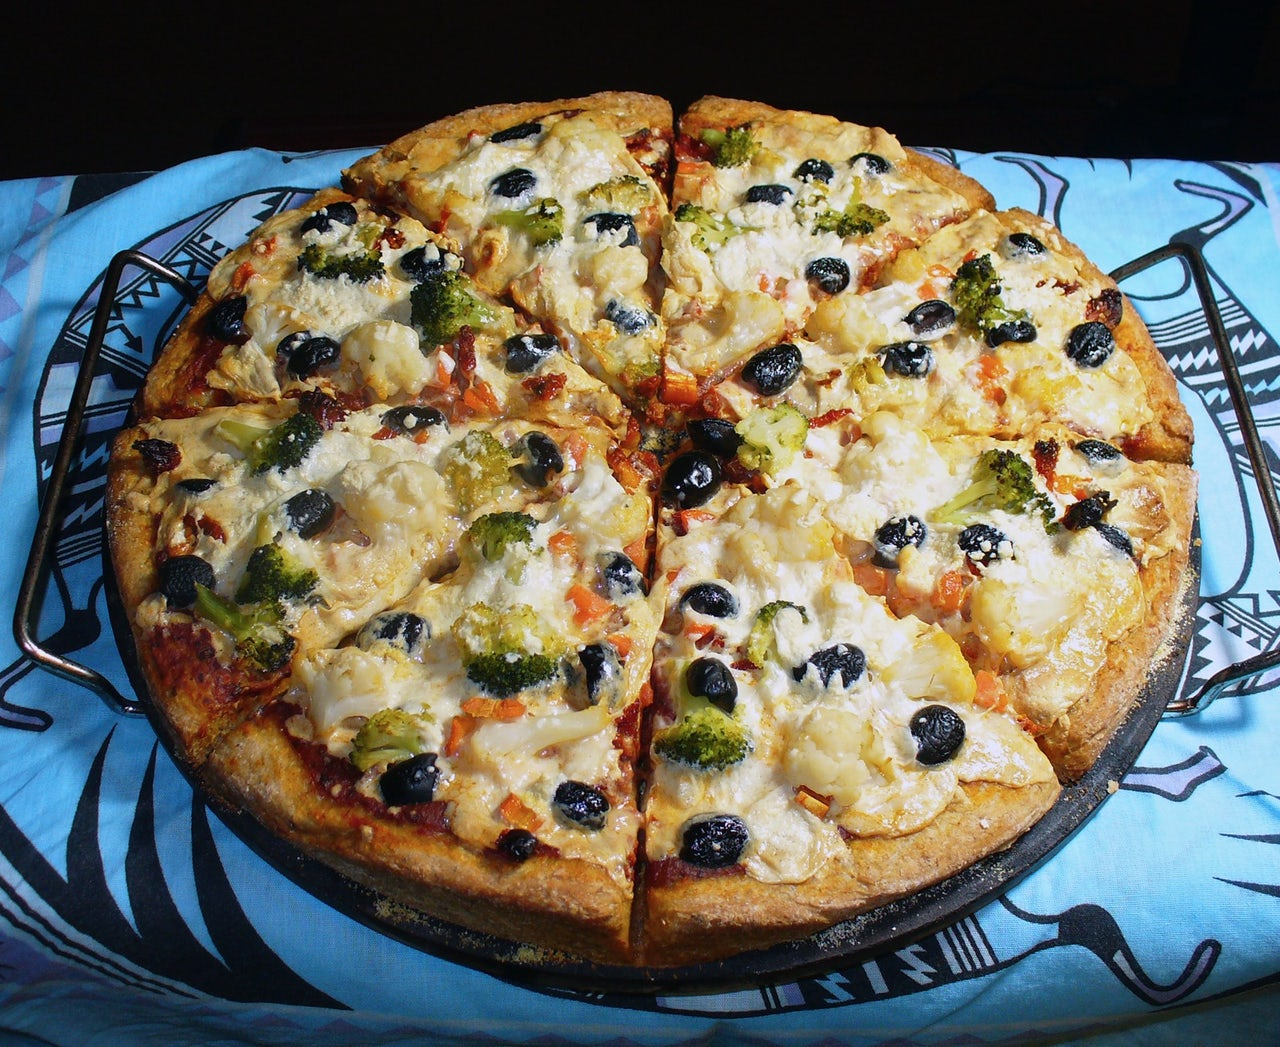 A homemade veggie lover's pizza with broccoli, cauliflower, carrots, sundried tomatoes, black olives, red sauce, and mozzarella Daiya cheese.